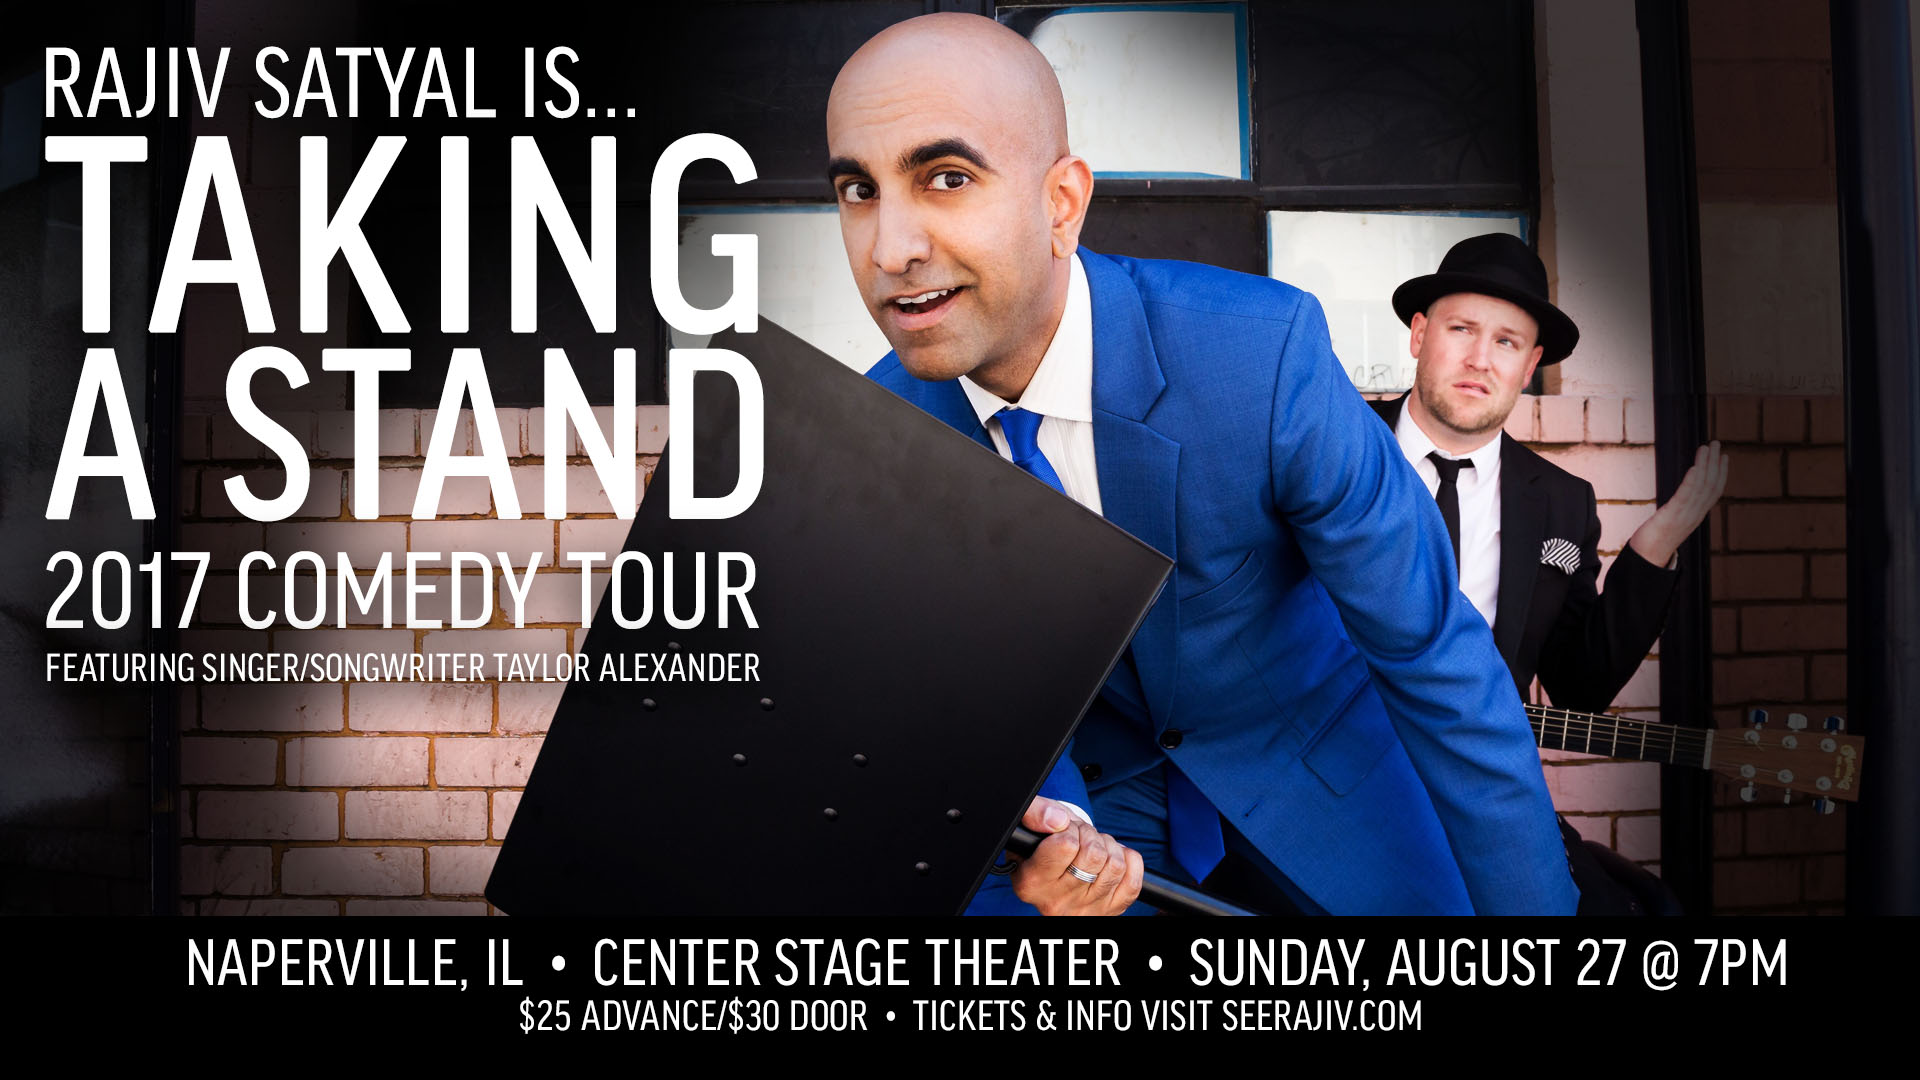 Rajiv Satyal's Taking a Stand Comedy Tour - Naperville Chicago